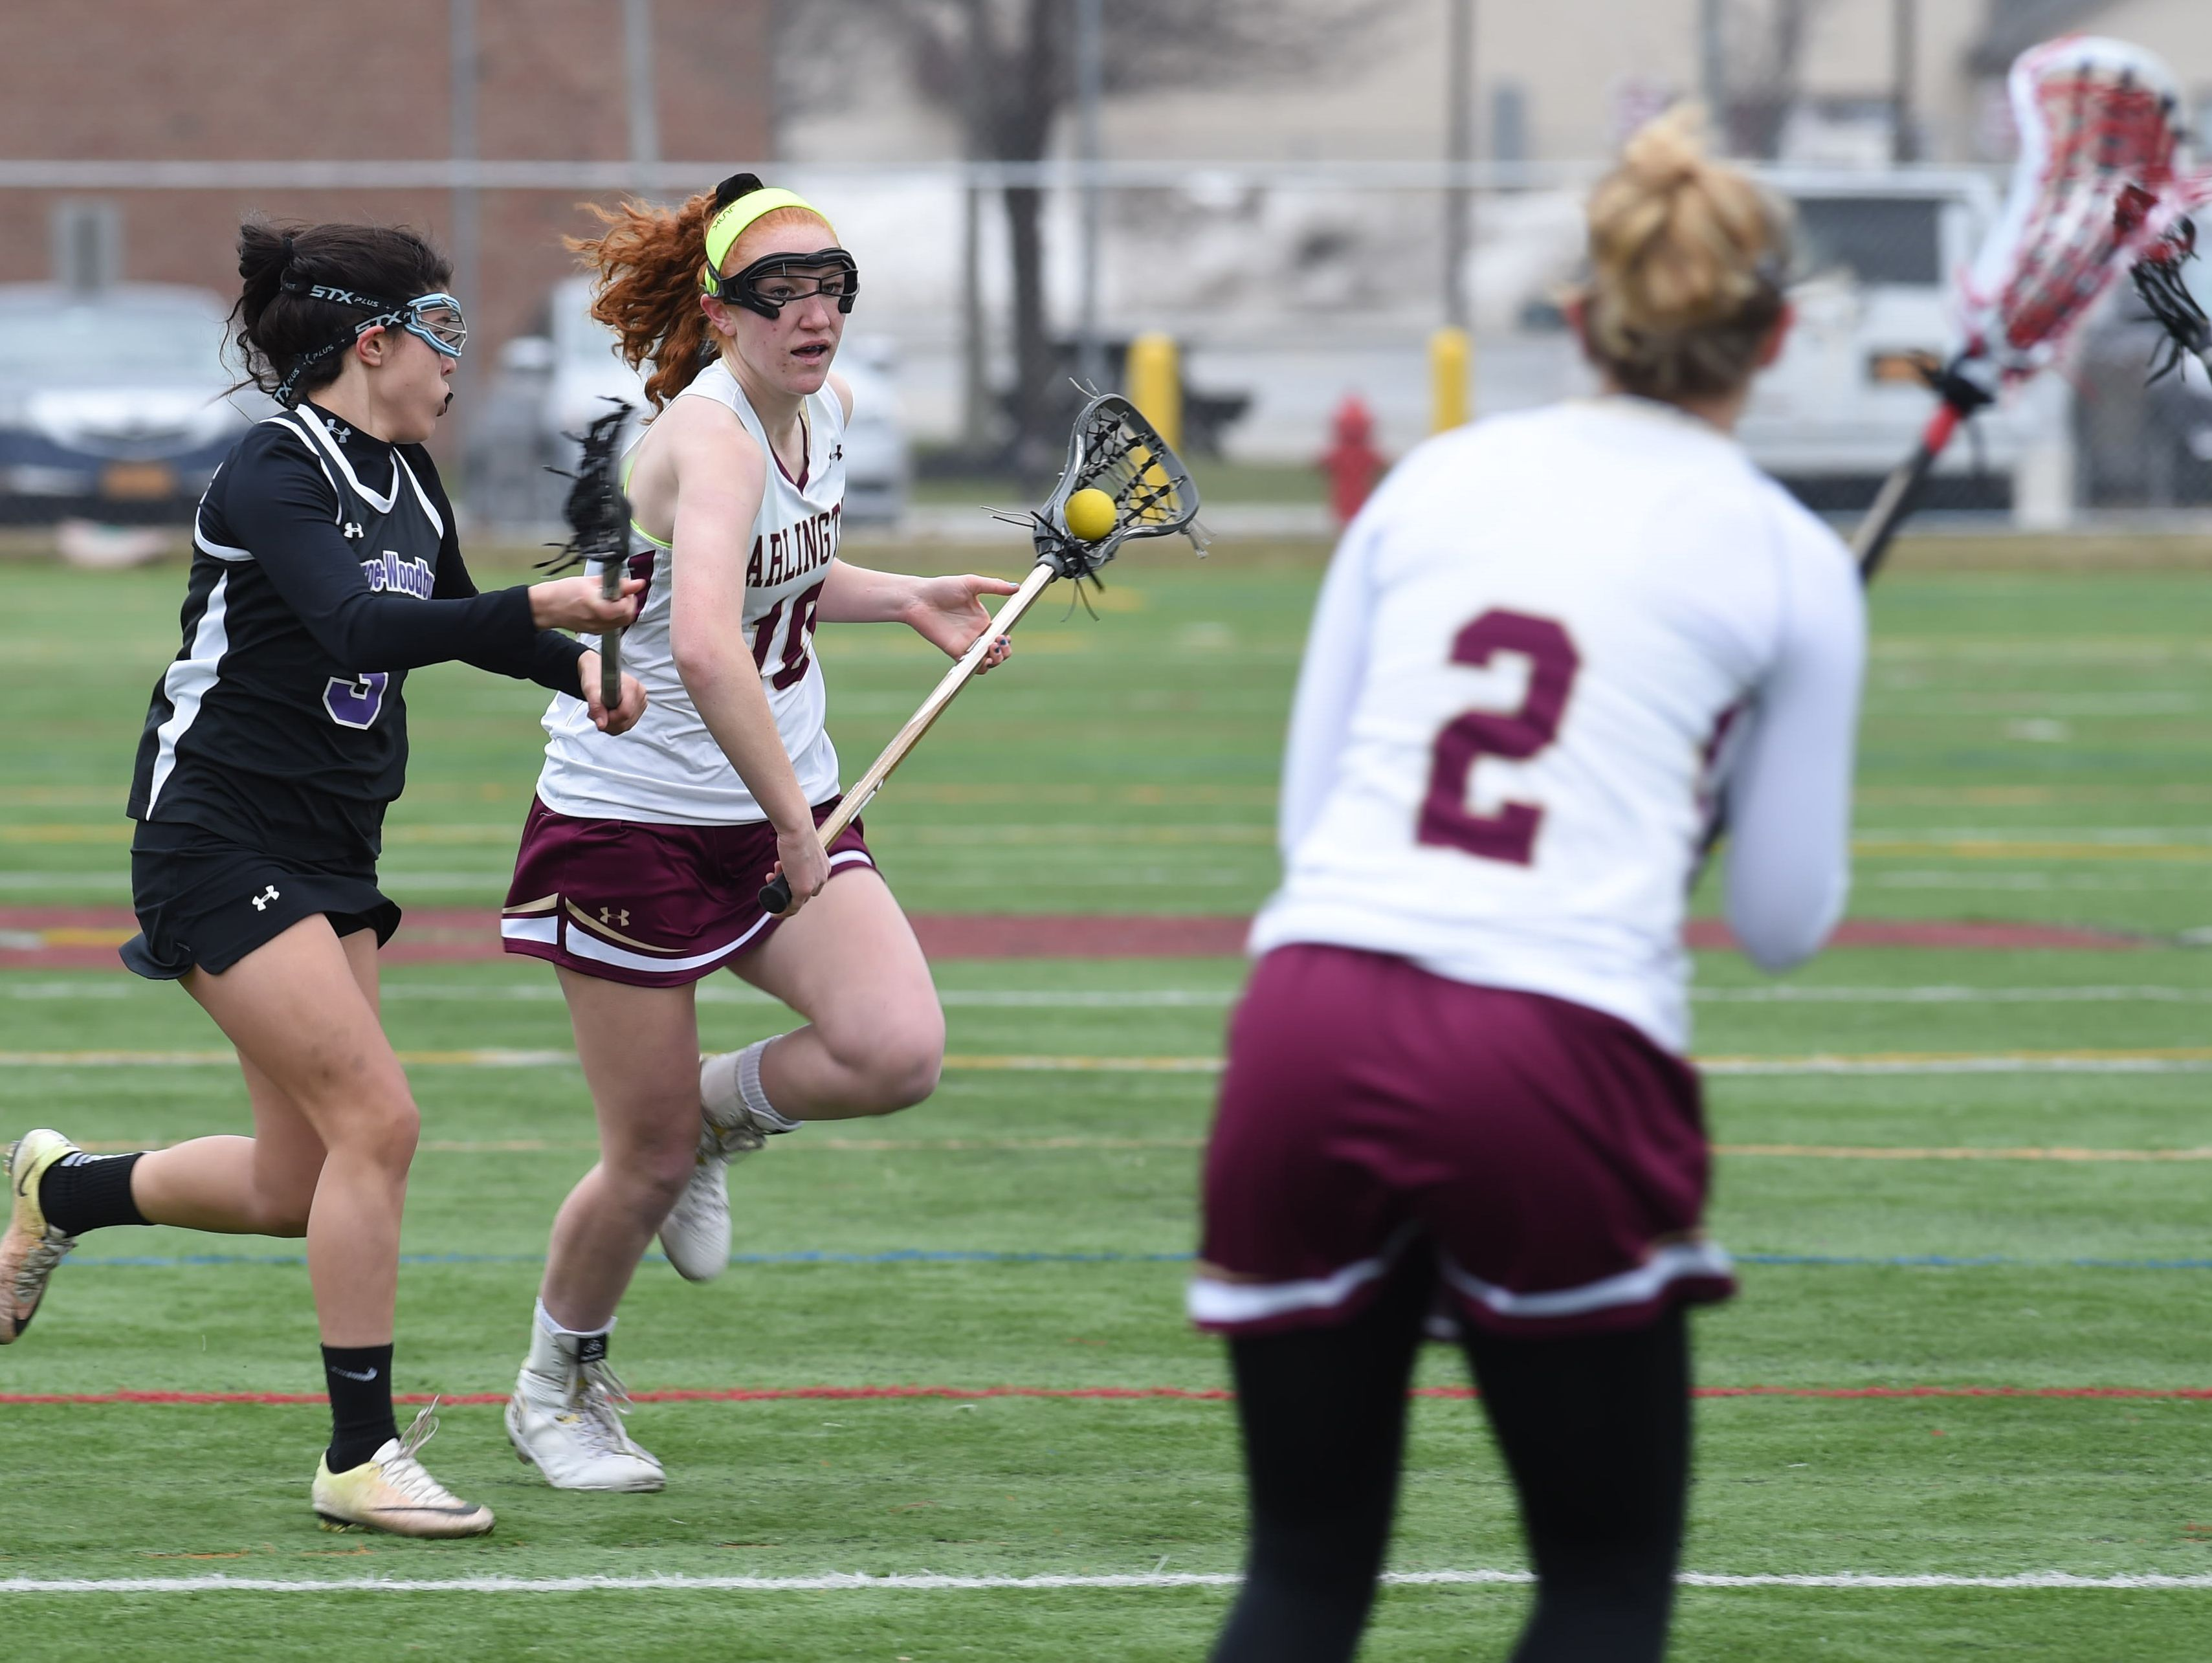 Arlington's Abby Carlin, center, takes the ball down the field during Saturday's game against Monroe-Woodbury.